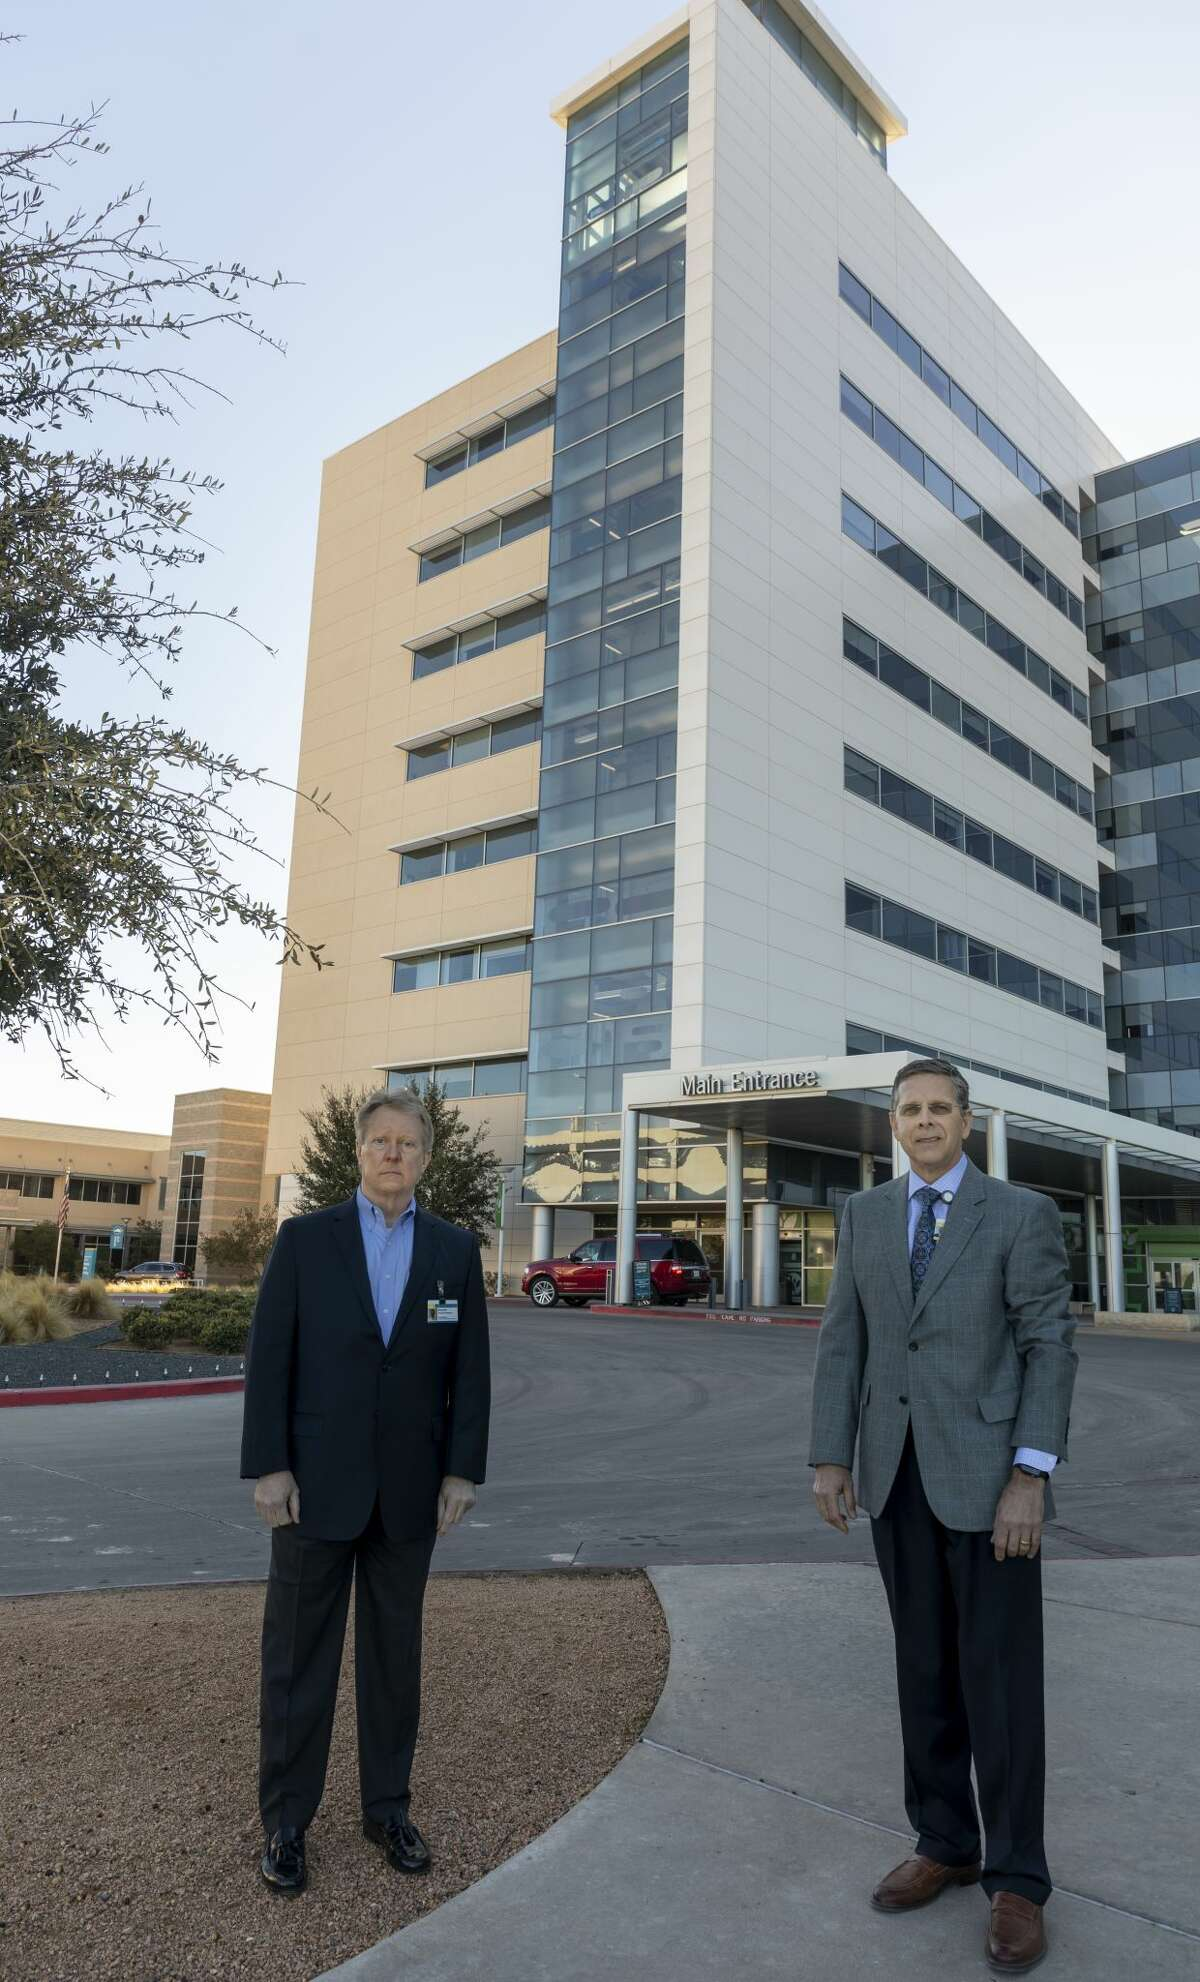 Dr. Larry Wilson, Midland Health chief medical officer, and President and CEO Russell Meyers stand outside Midland Memorial Hospital on Dec. 7. The two men have kept Midlanders informed about the COIVID-19 situation in Midland County.